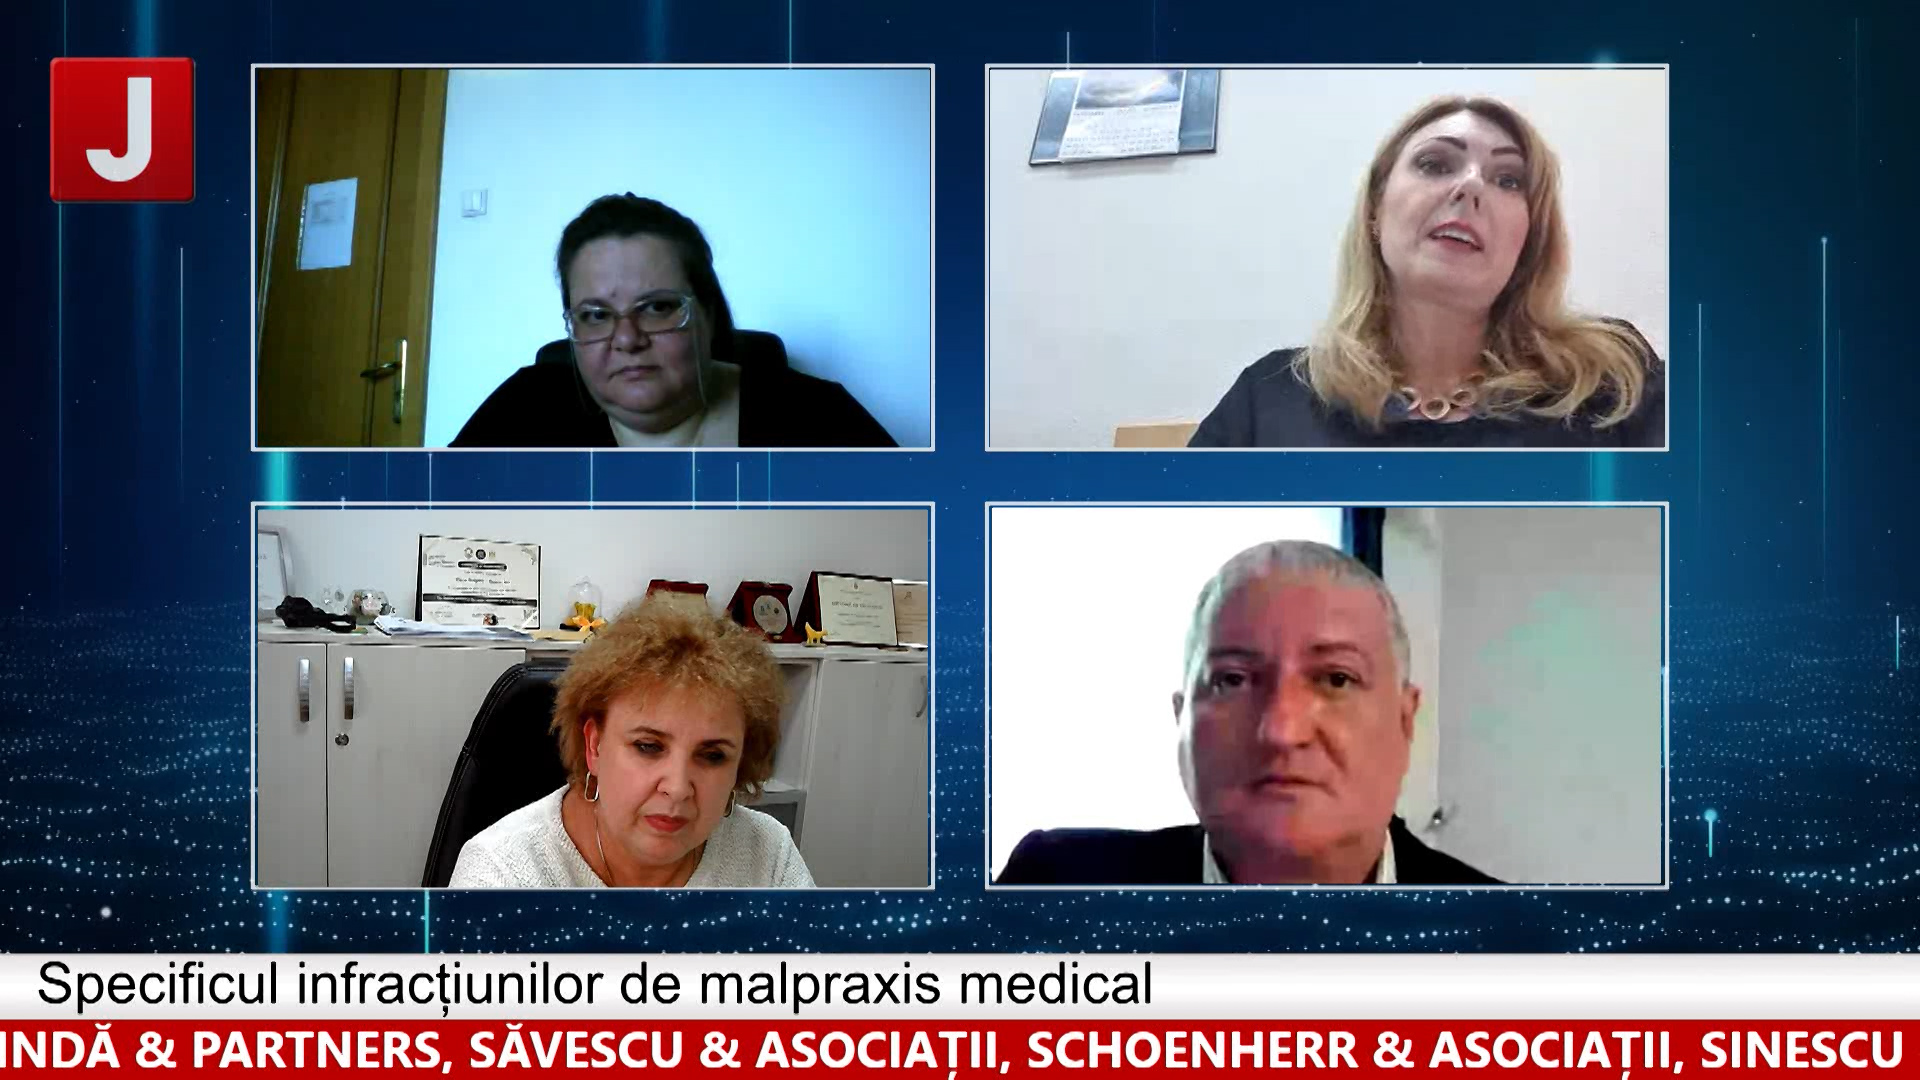 Specificul infracțiunilor de malpraxis medical